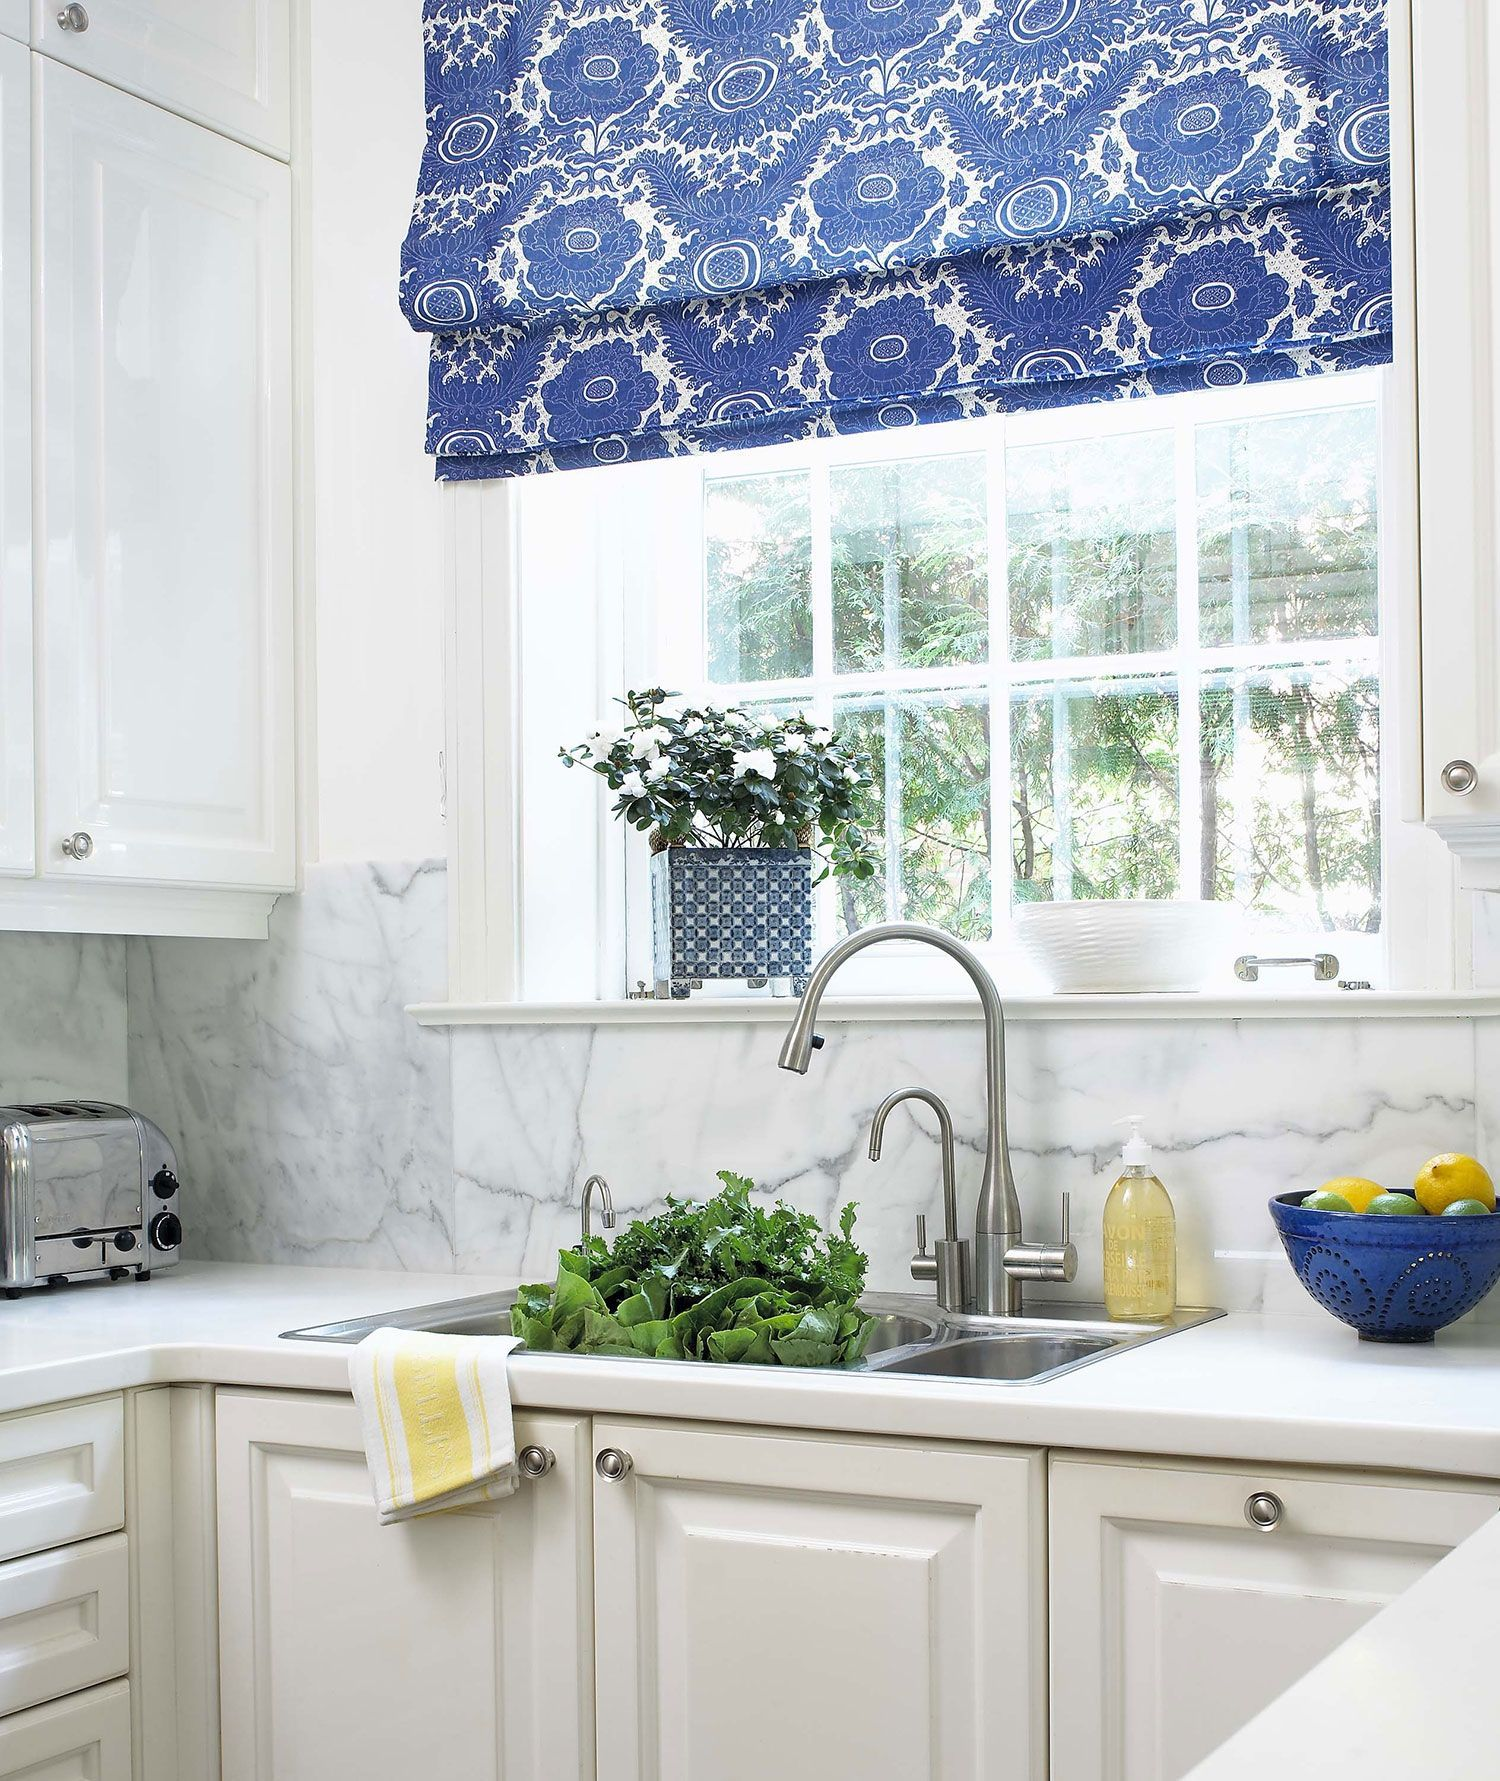 Outside window treatment ideas  beautiful blue u white kitcheni so wish they would have brought the